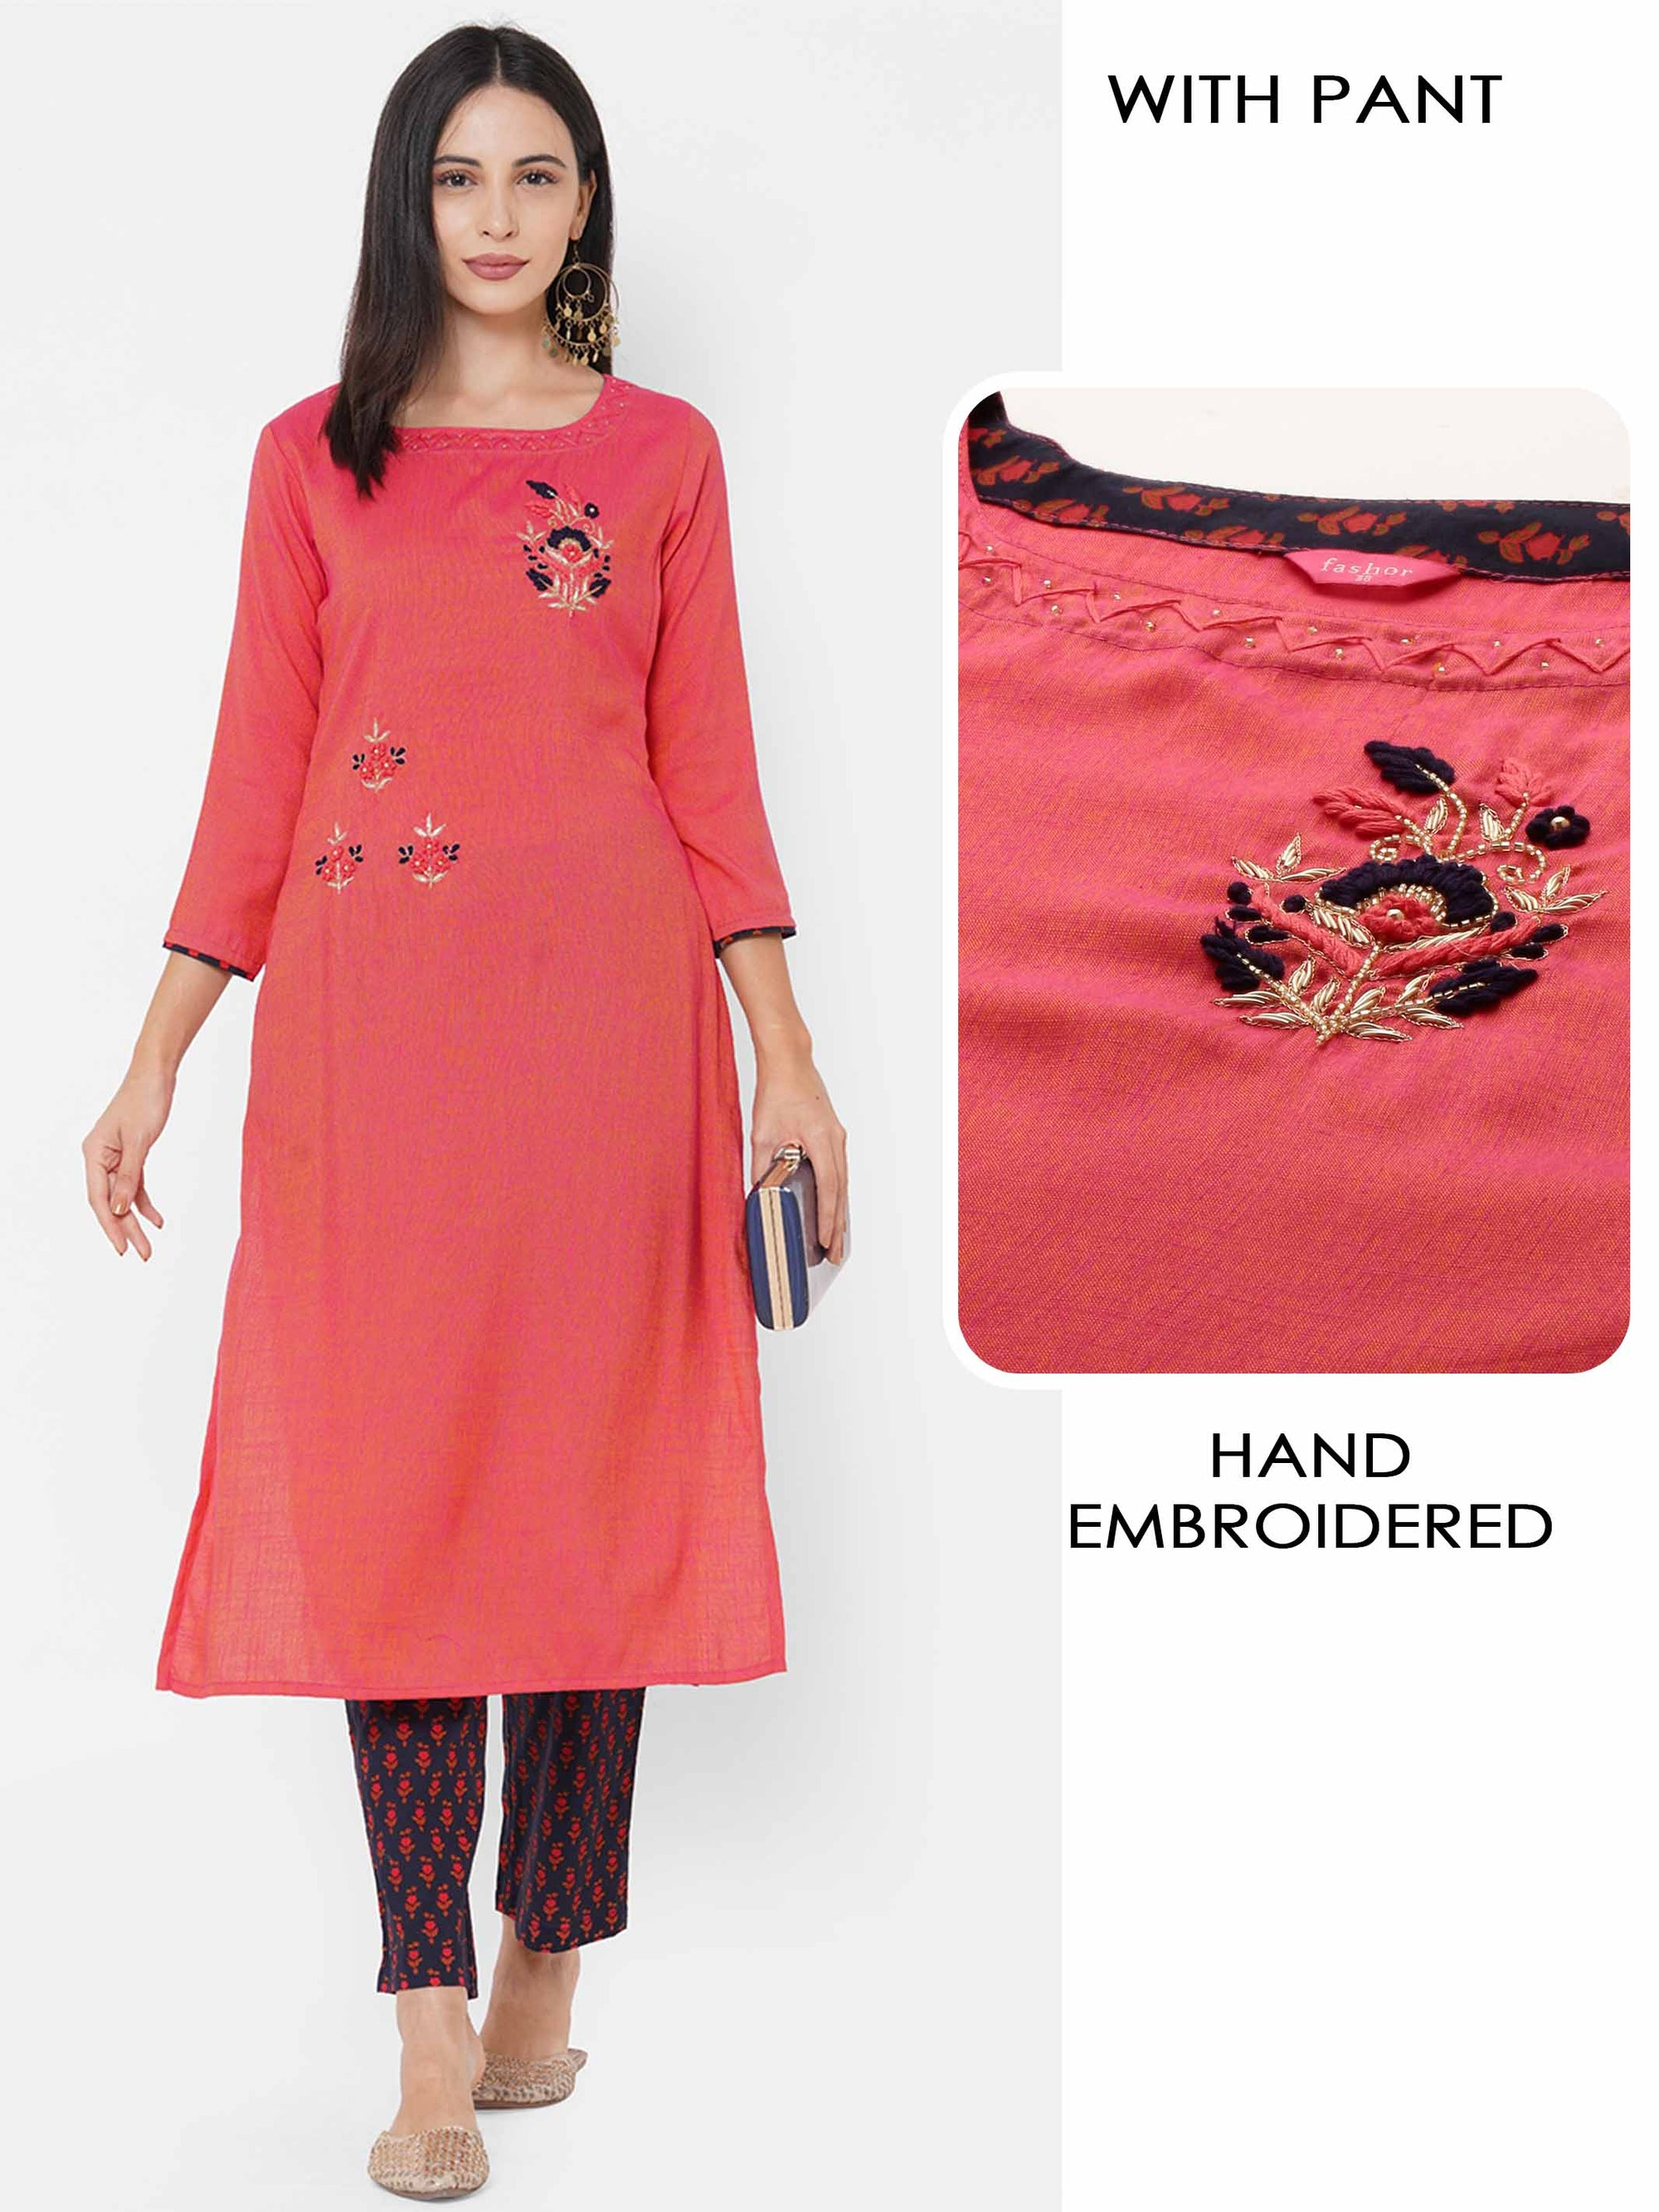 Floral Hand Embroidered Straight Kurta with Floral Dense Printed Pant – Pink